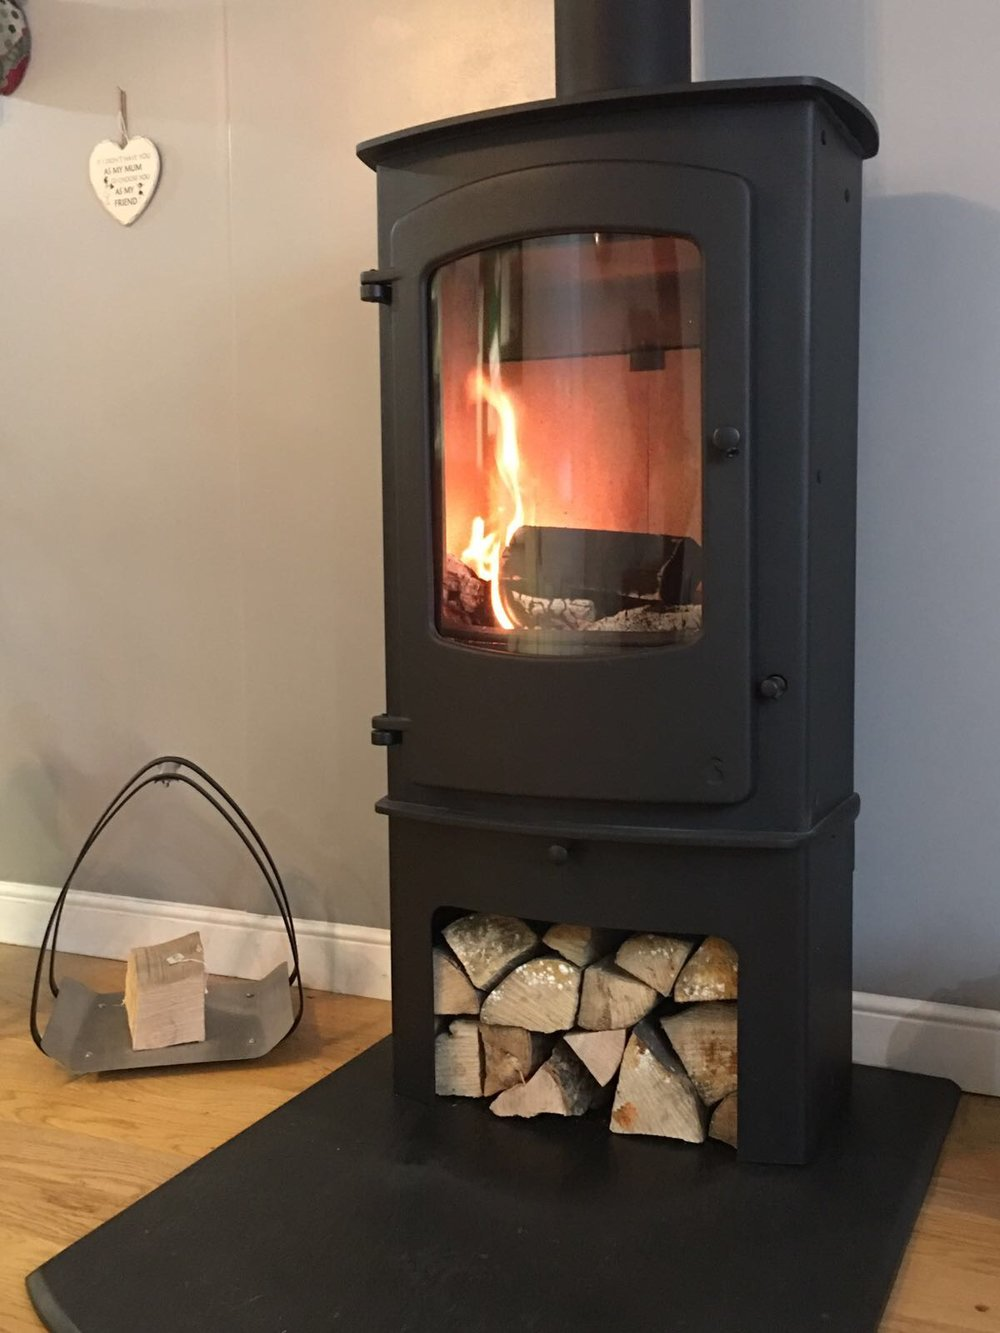 Charnwood Cove 3, with Store Stand, black, as displayed in our showroom  CURRENTLY FOR SALE AT REDUCED PRICE OF £1500.00!!!!